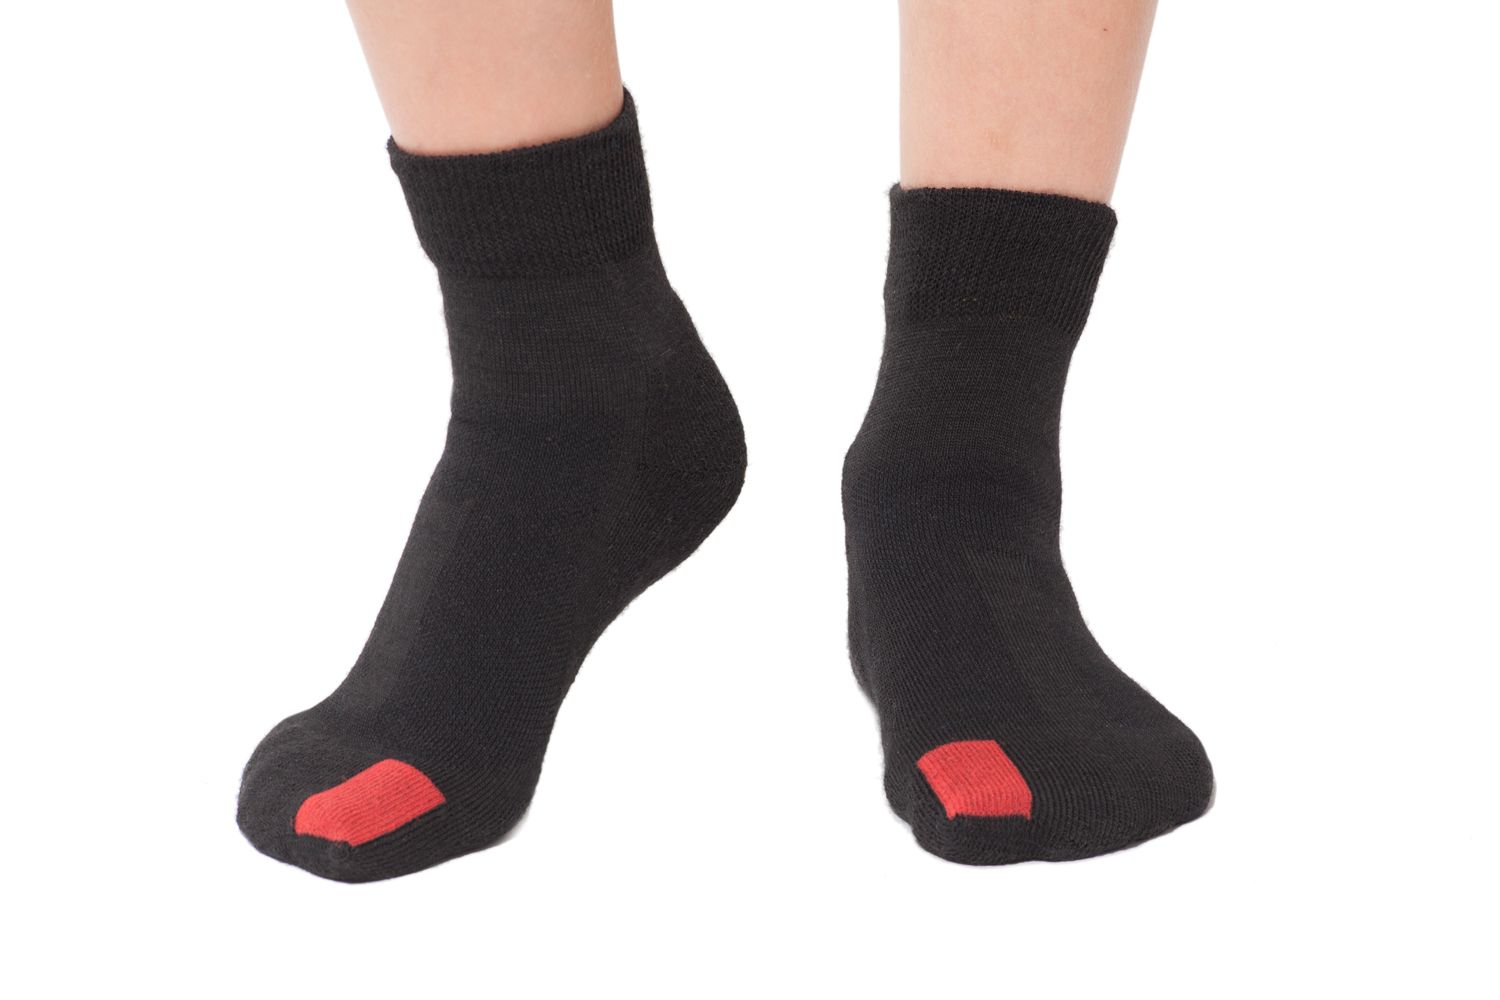 plus12socks kids feet wearing black socks front view